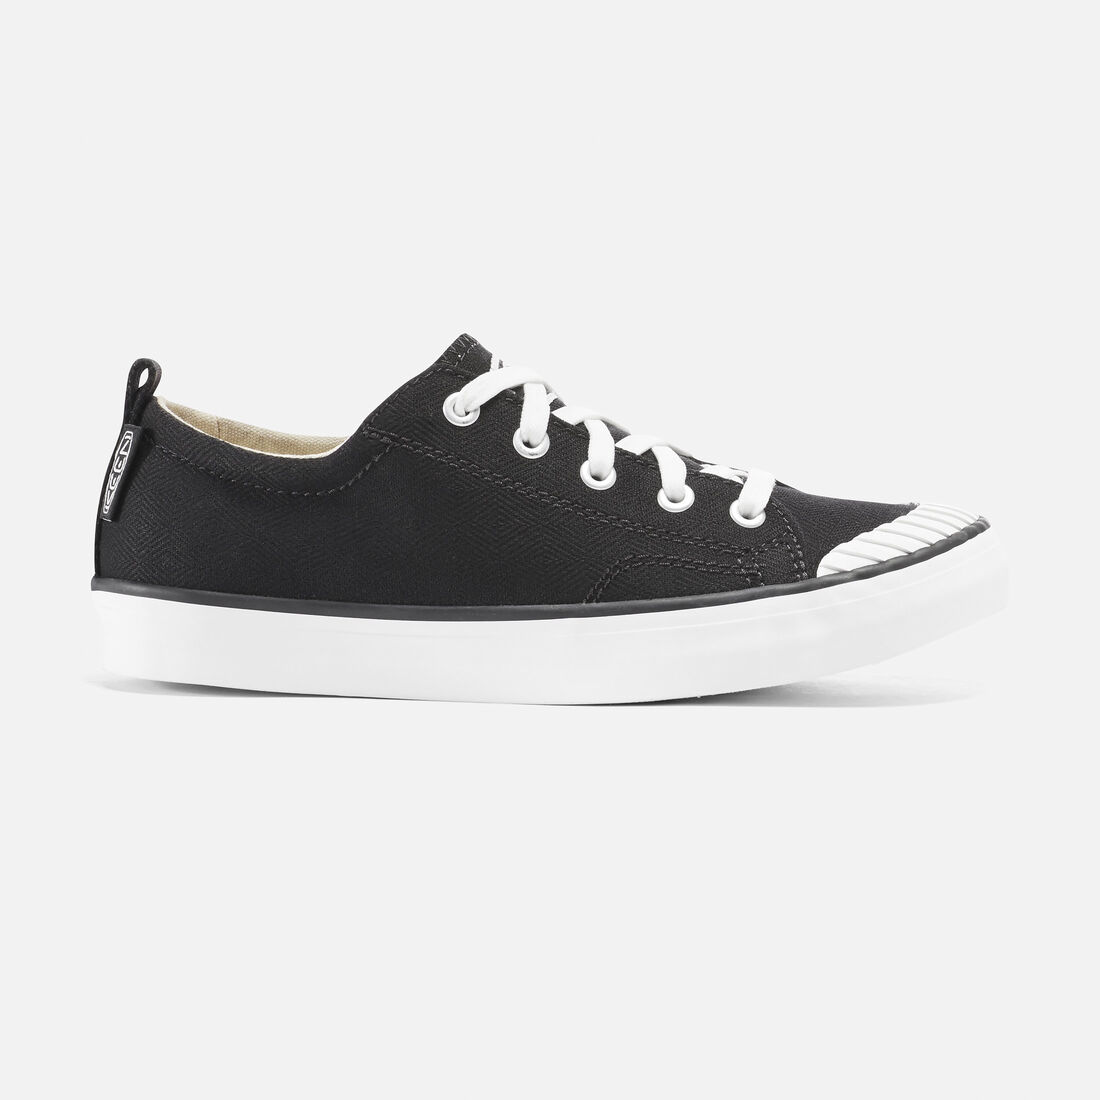 ELSA SNEAKER pour femme in Black/Star White - large view.